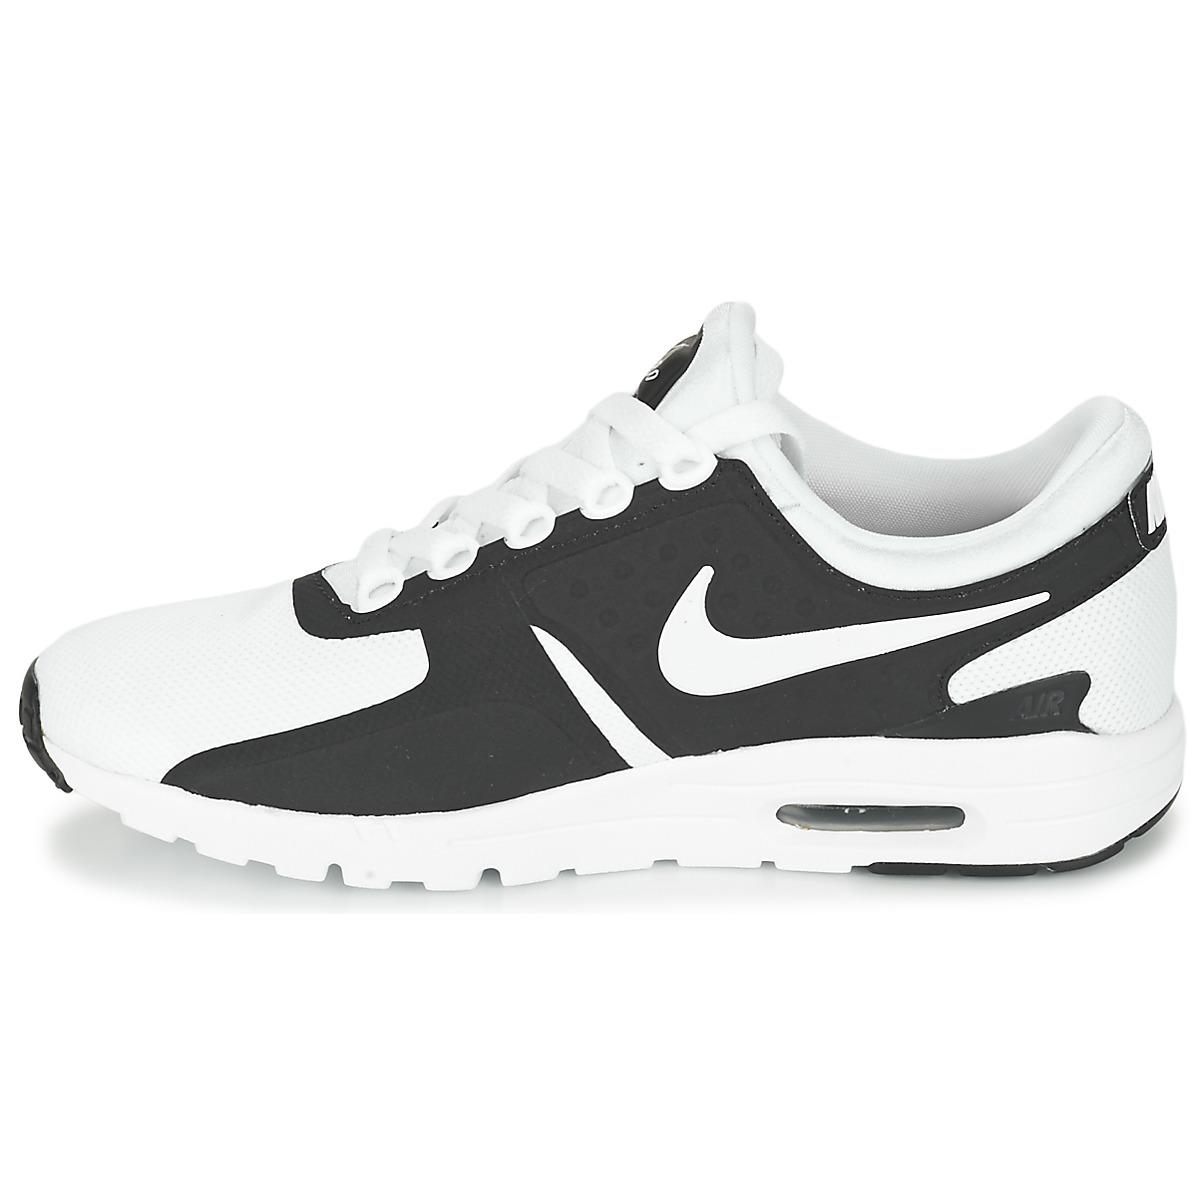 Nike Air Max Zero W Women's Shoes (trainers) In Black